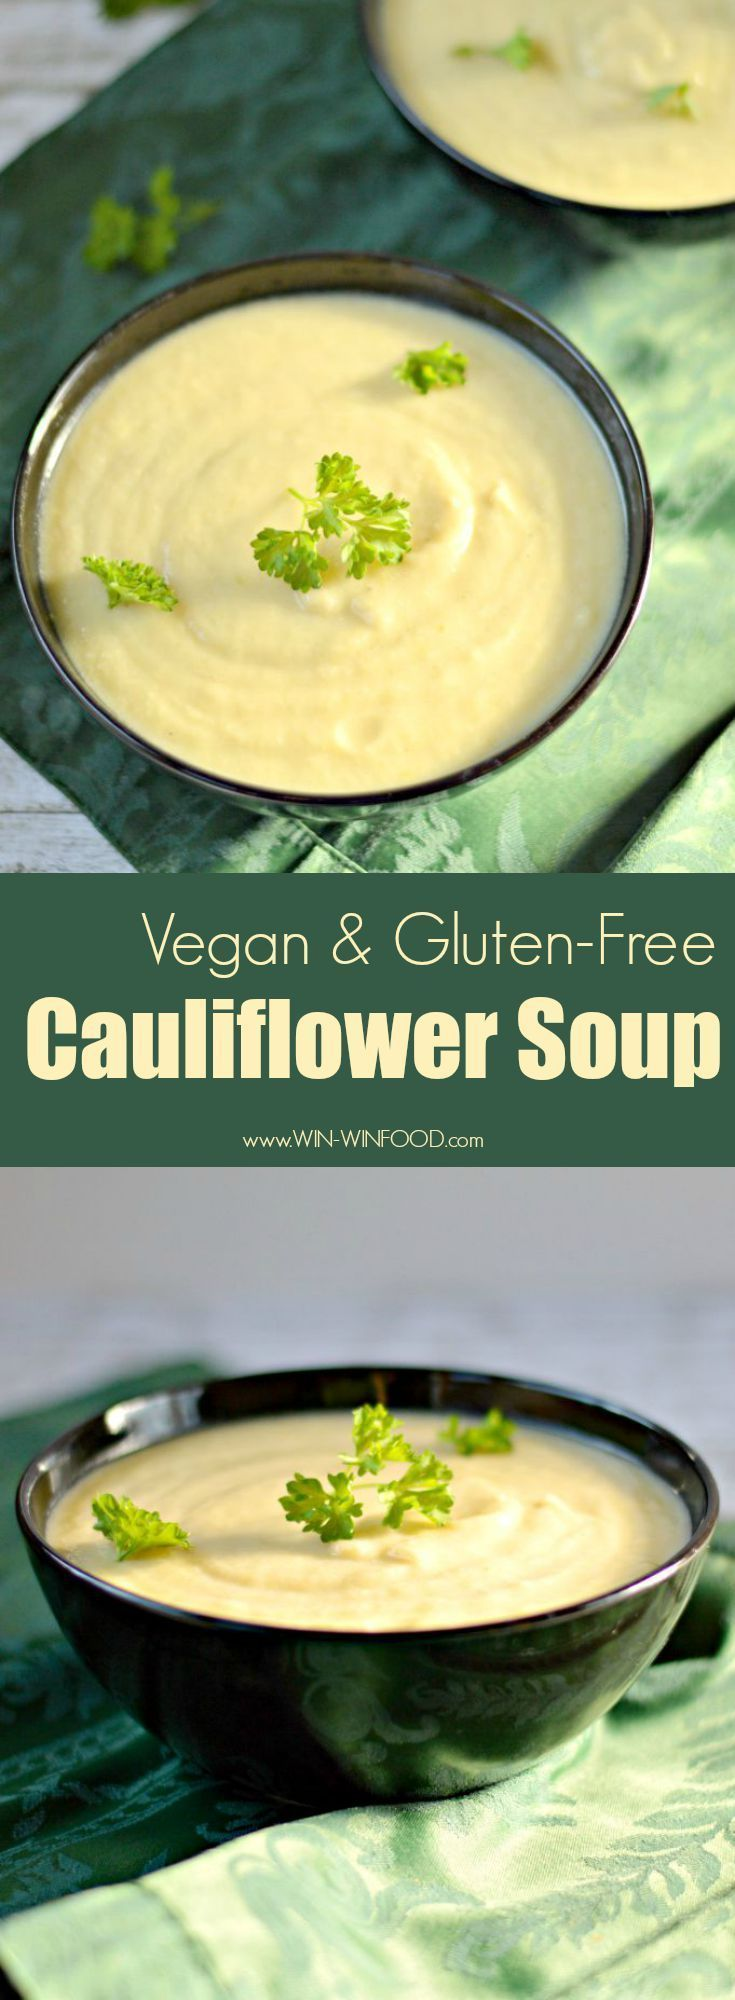 Vegan Cauliflower Soup -Extra rich and creamy, this quick & easy soup works as an amazing appetizer or even a main dish with some whole grain or gluten free bread. #healthy #vegan #glutenfree